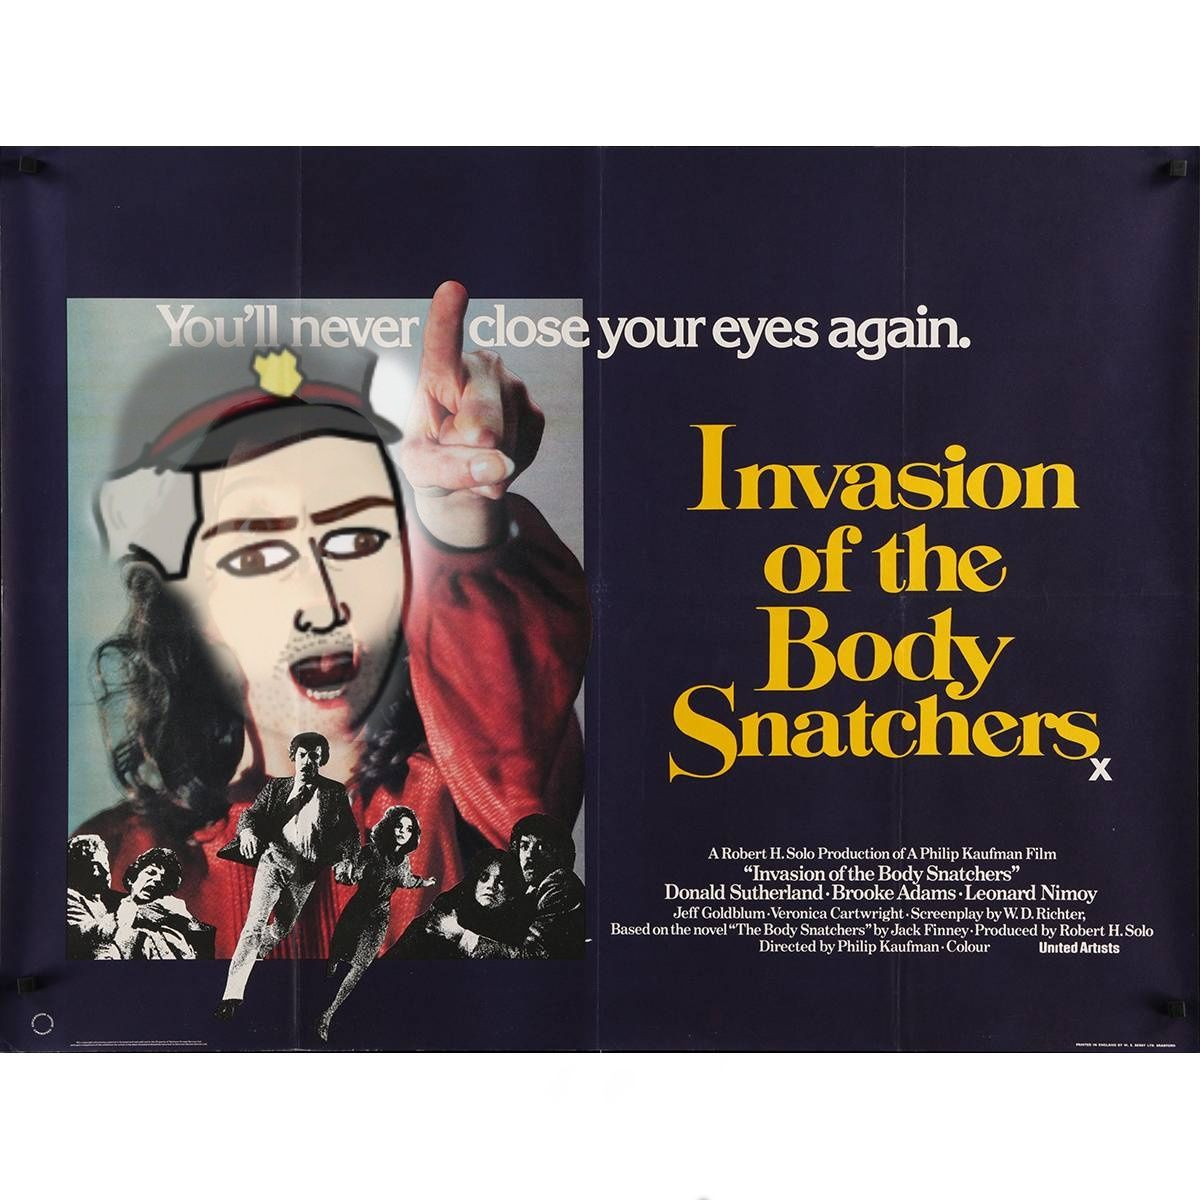 invasion-of-the-body-snatchers-movie-poster-30x40-in-british-quad-1978-sutherland-01.jpeg